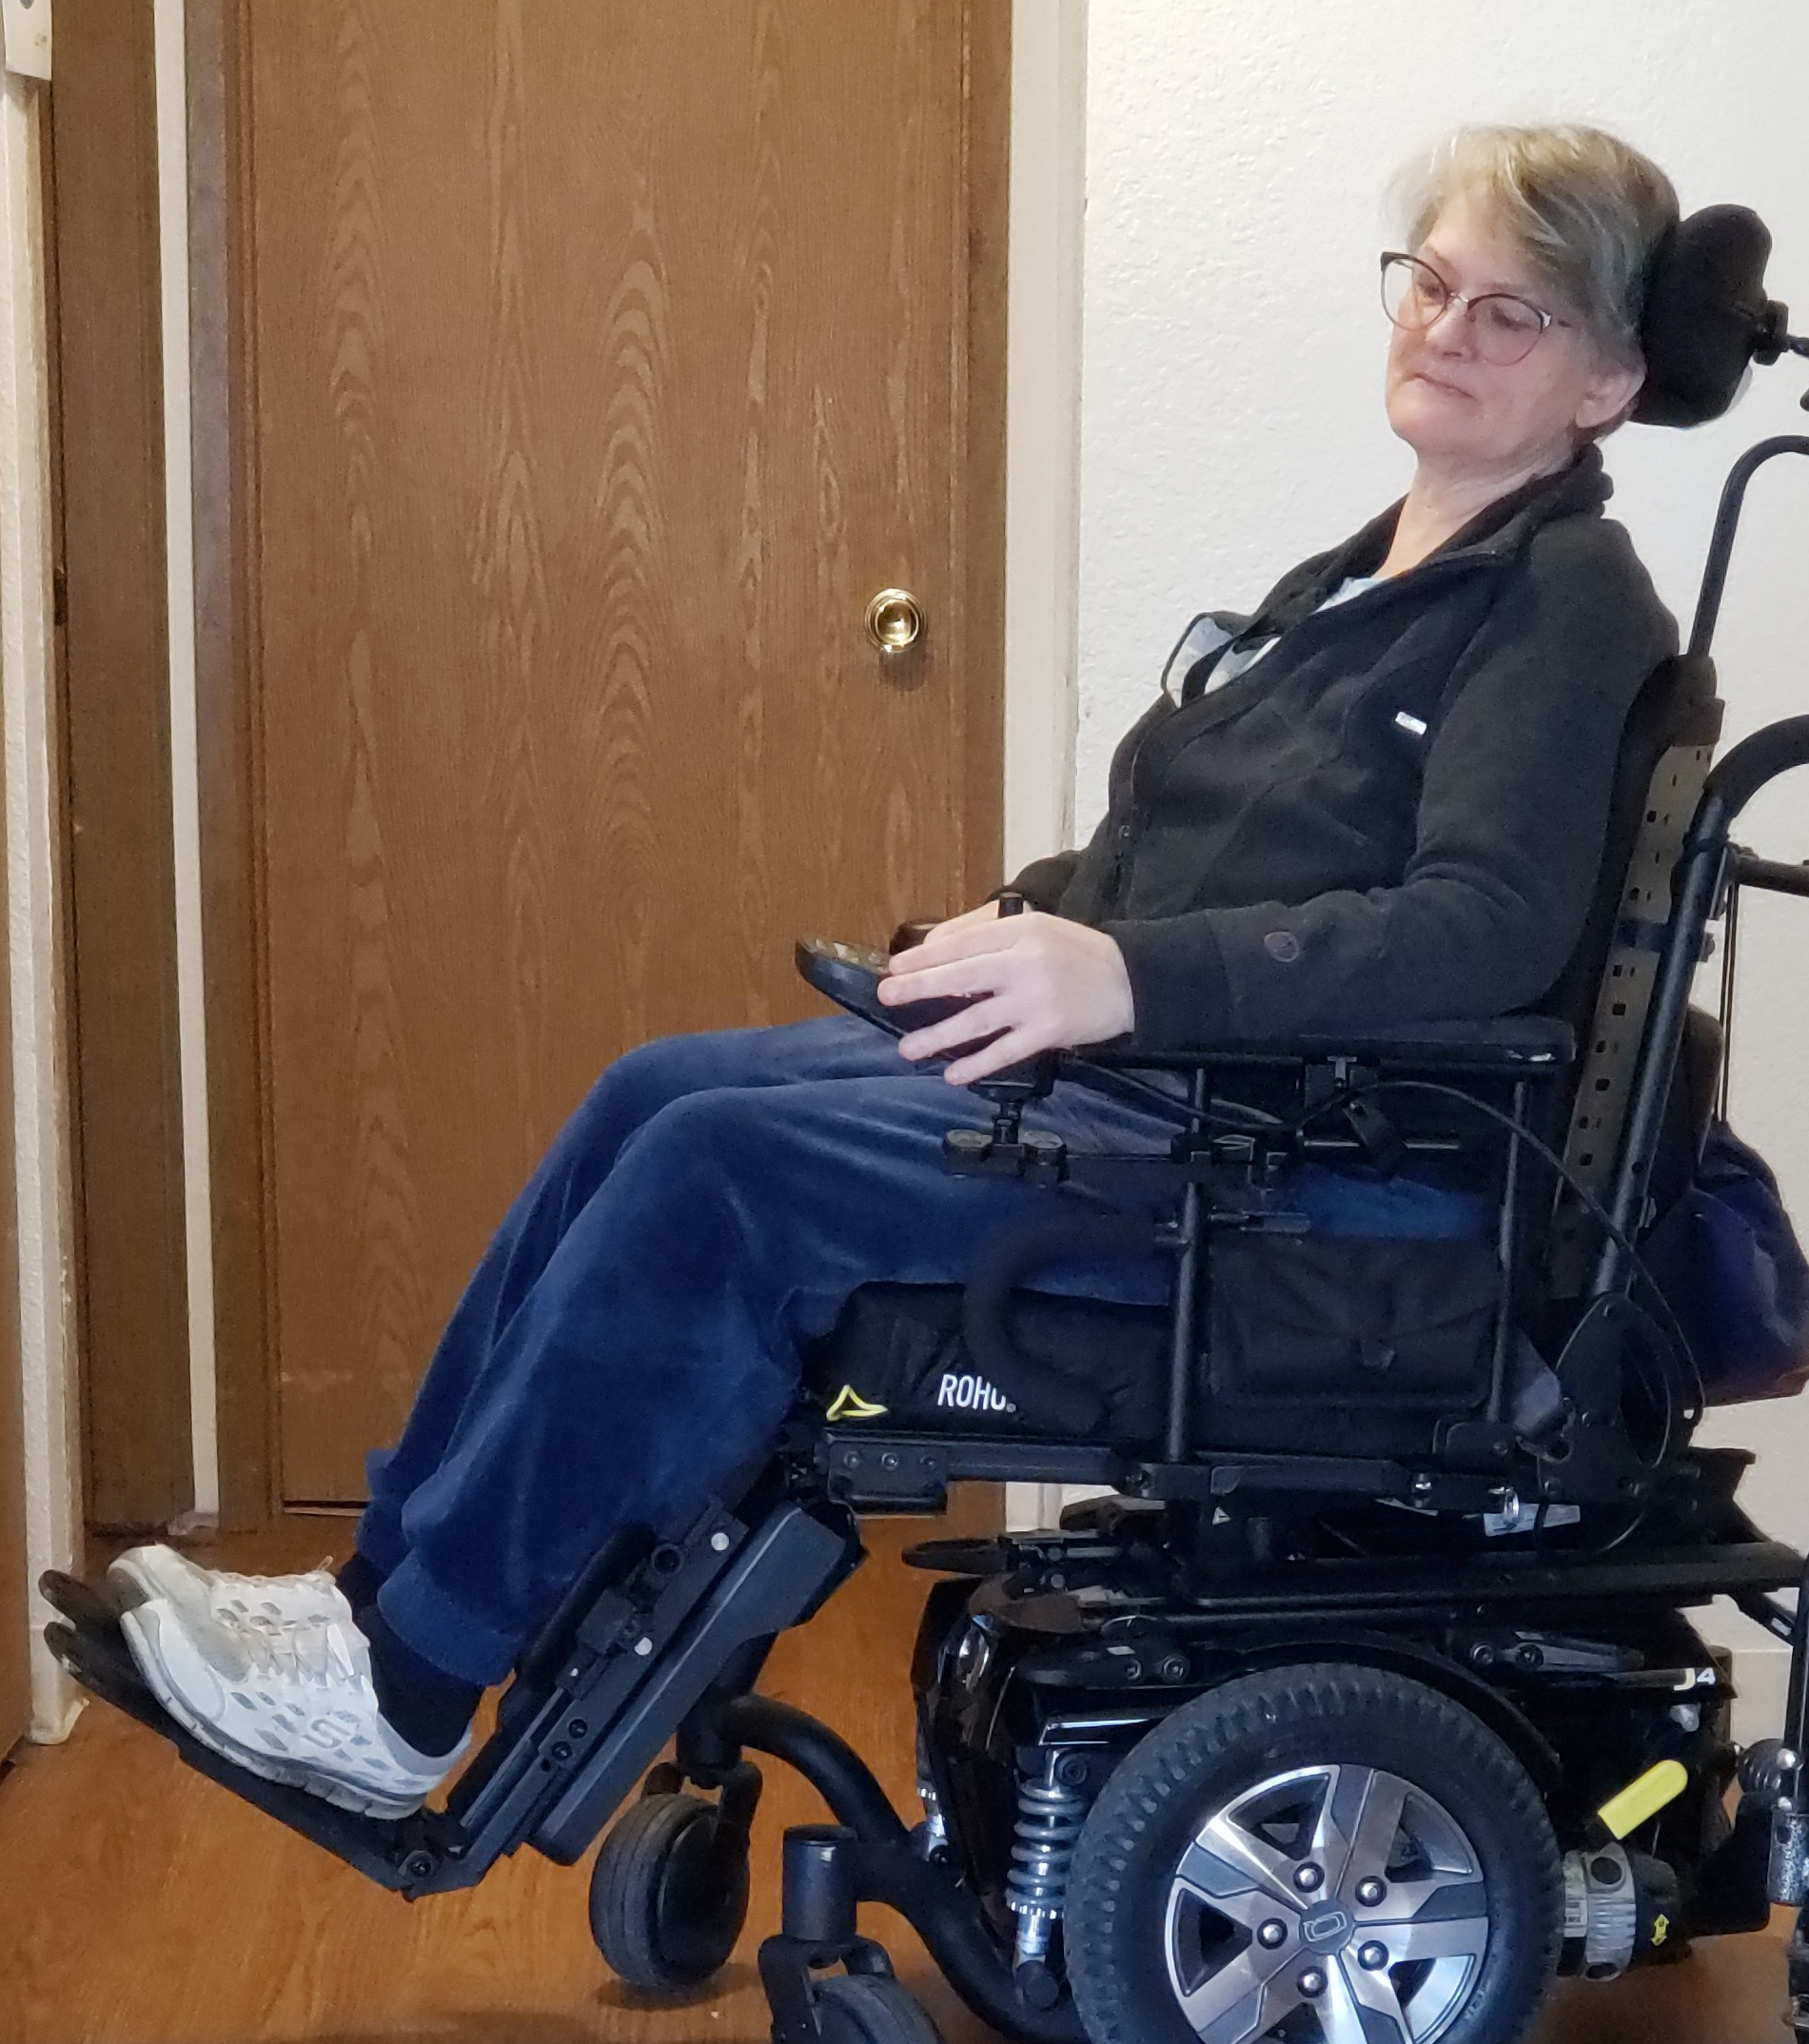 The author in her J4 powerchair